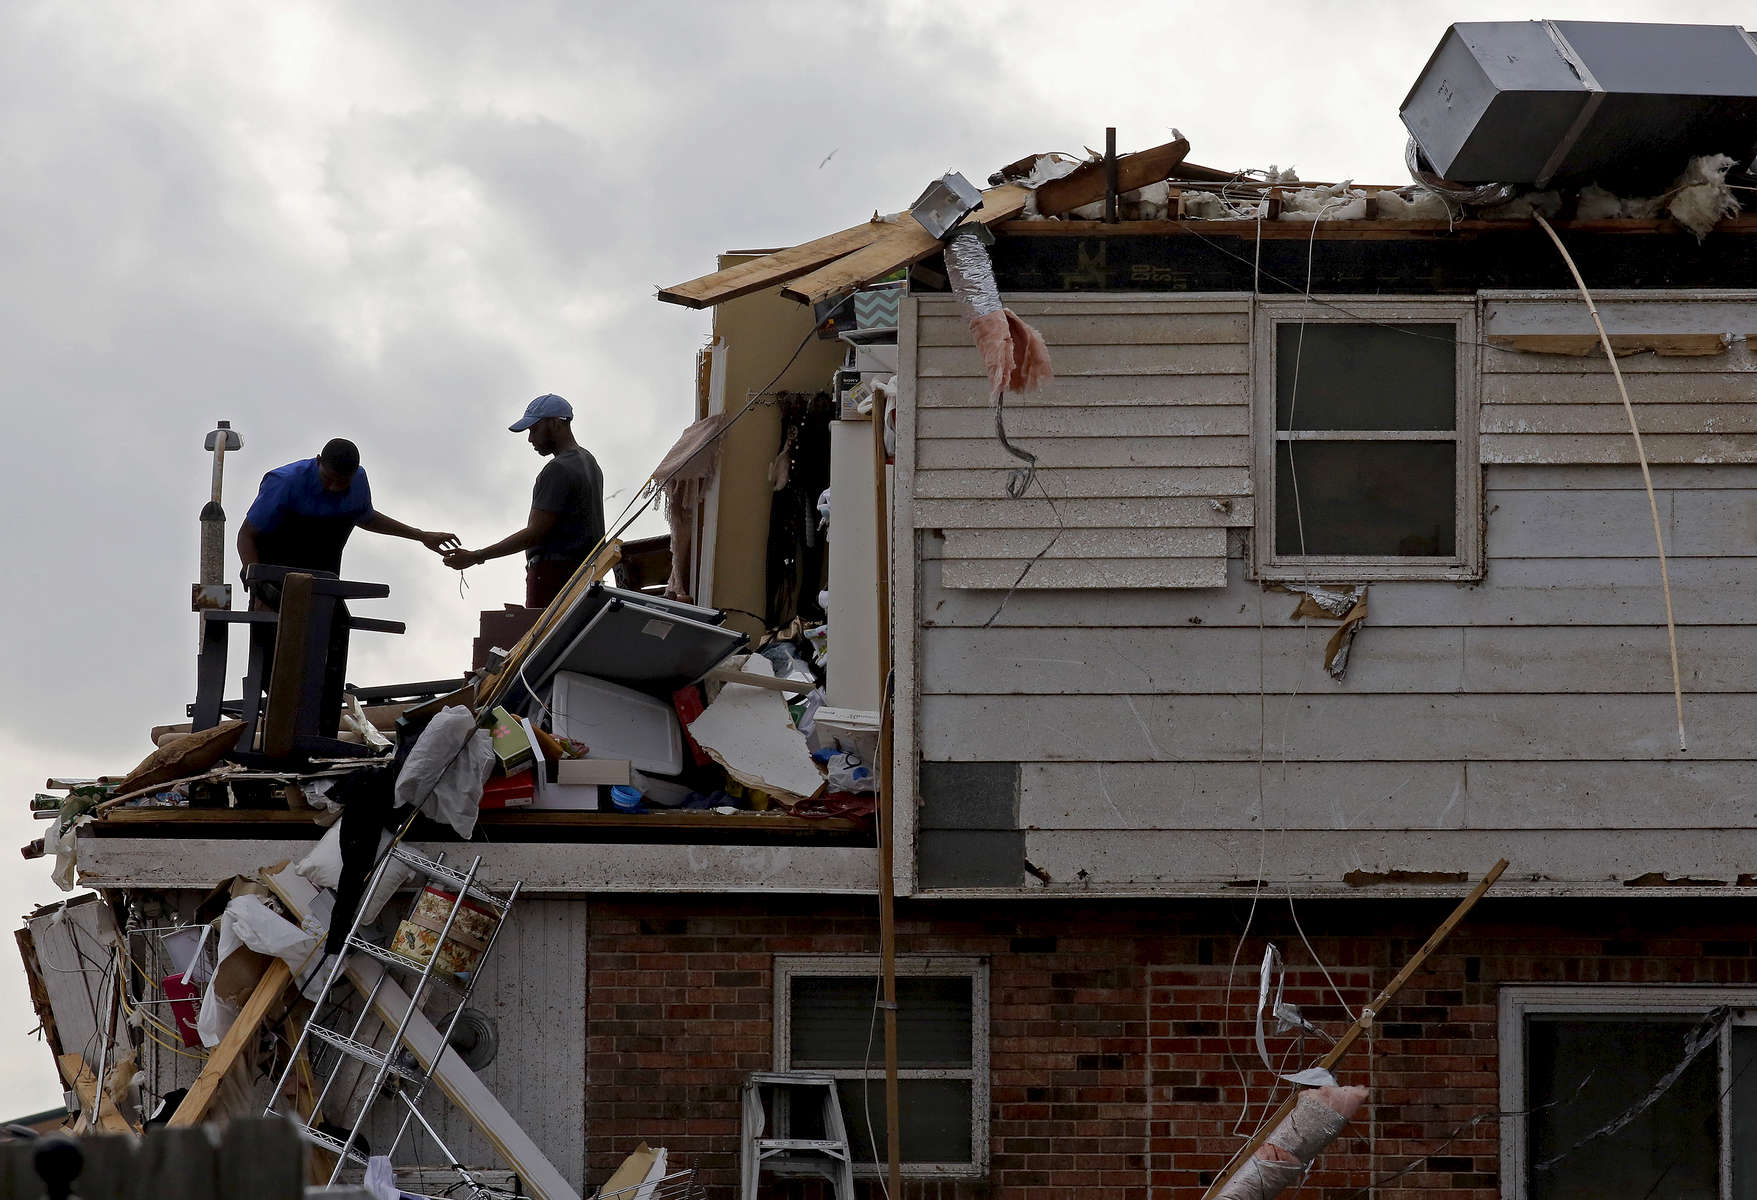 NEW ORLEANS, LOUISIANA. Personal belongings are salvaged from a tornado damaged home in eastern New Orleans, Louisiana after a tornado touched down leaving many homeless on Tuesday, February 7, 2017. (Max Becherer/Polaris Images)